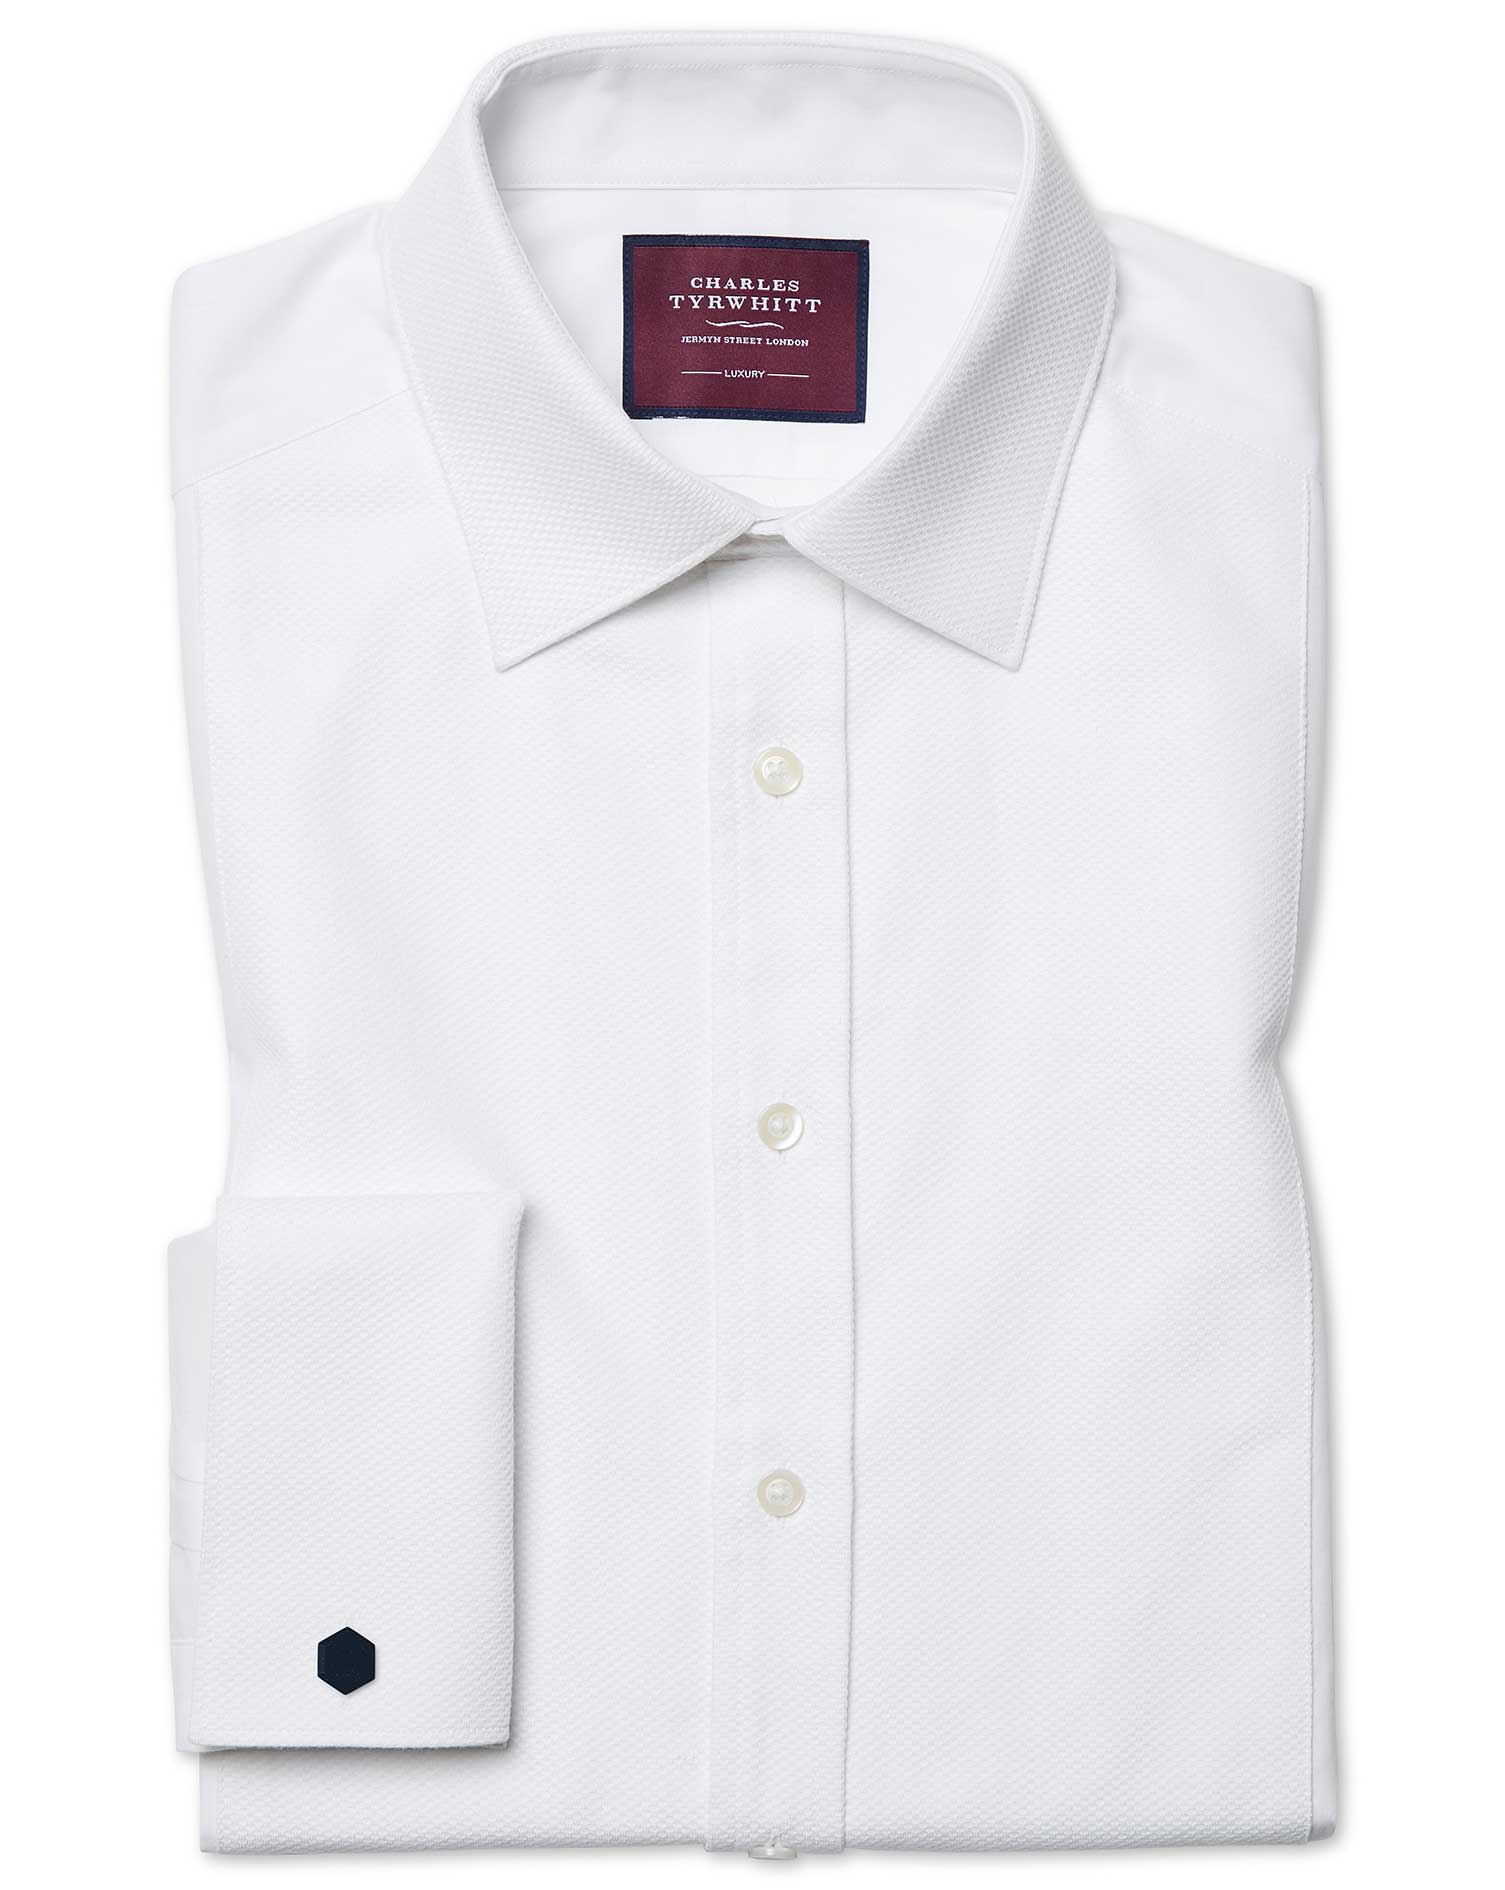 Classic Fit Luxury Marcella Bib Front White Evening Egyptian Cotton Formal Shirt Double Cuff Size 17